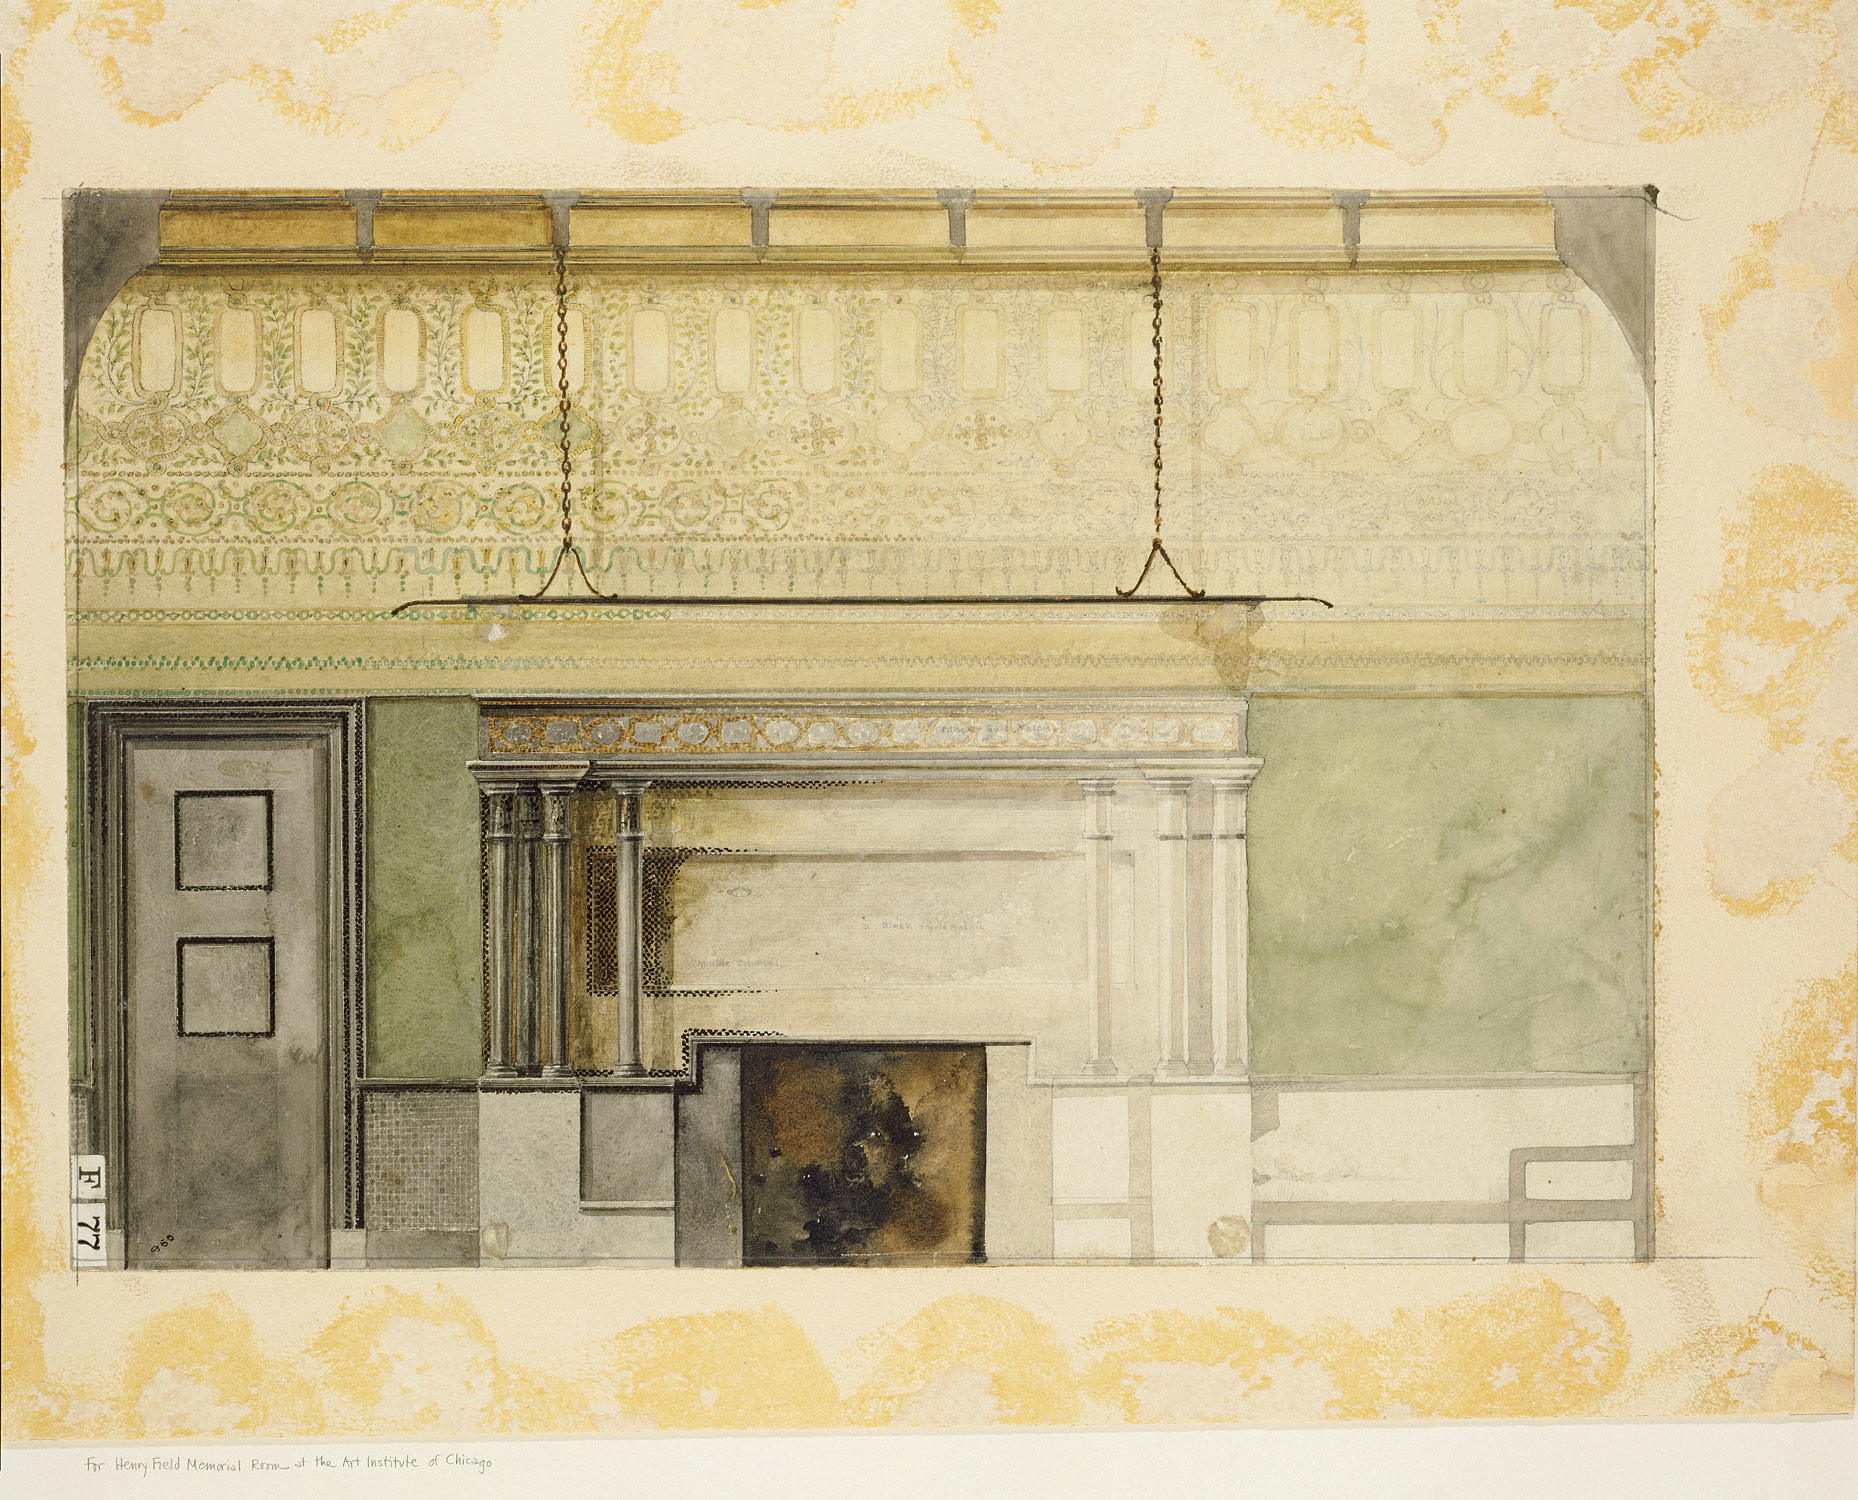 louis comfort tiffany essay heilbrunn timeline of design for henry field memorial gallery at the art institute of chicago